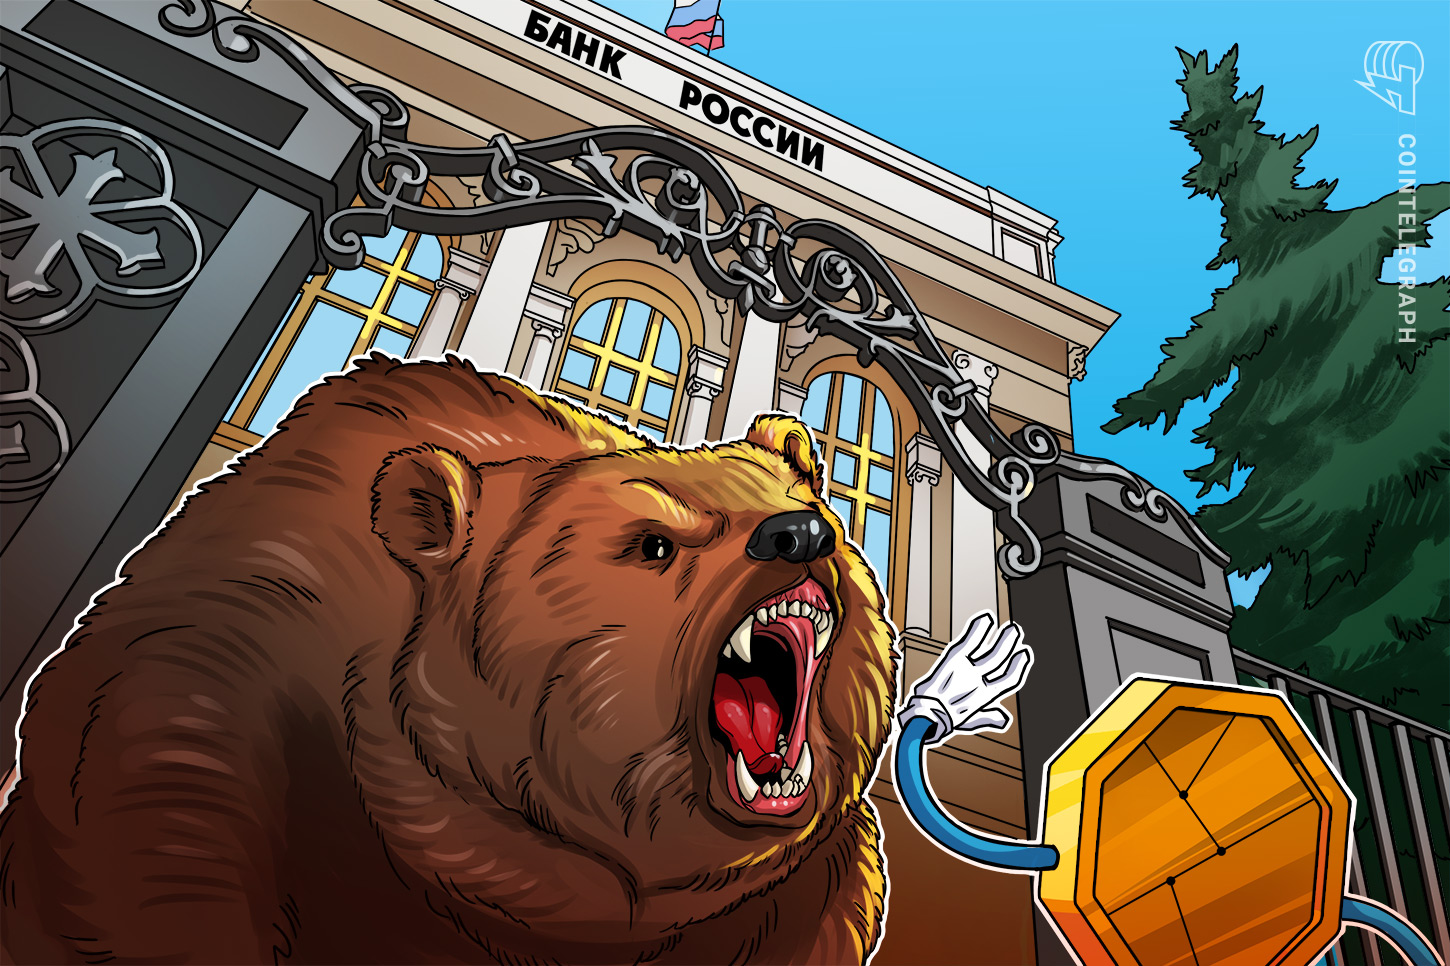 Bank of Russia asks stock exchanges to not list crypto-related firms